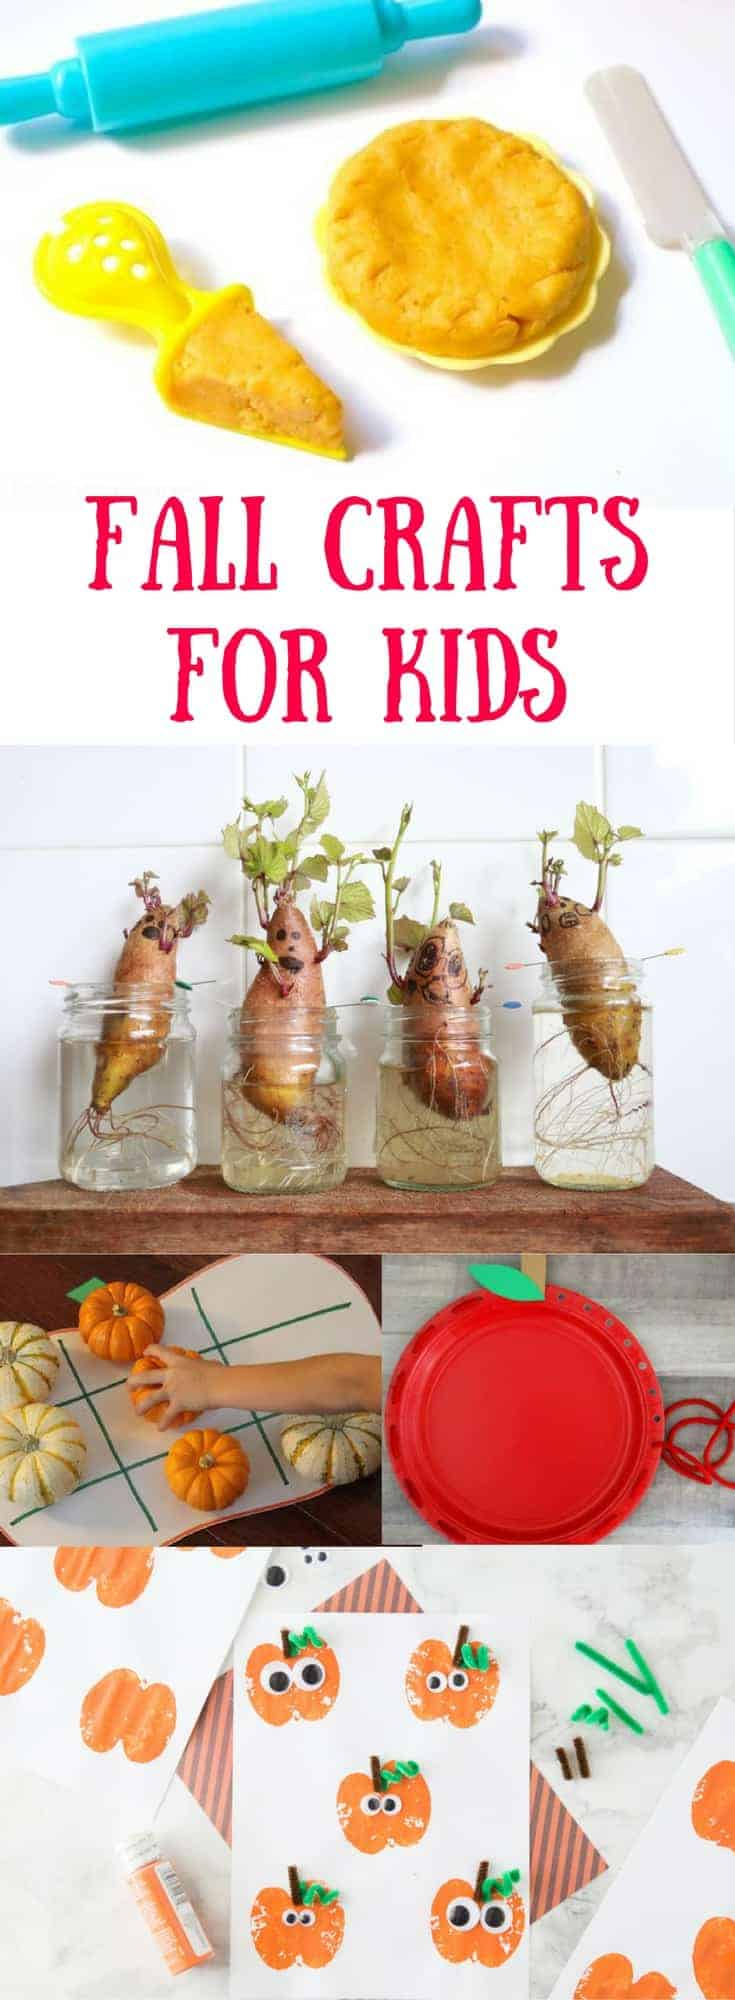 These 7 fun, frugal activities are ones you can do TODAY. Get crafting with your kids, Momma!